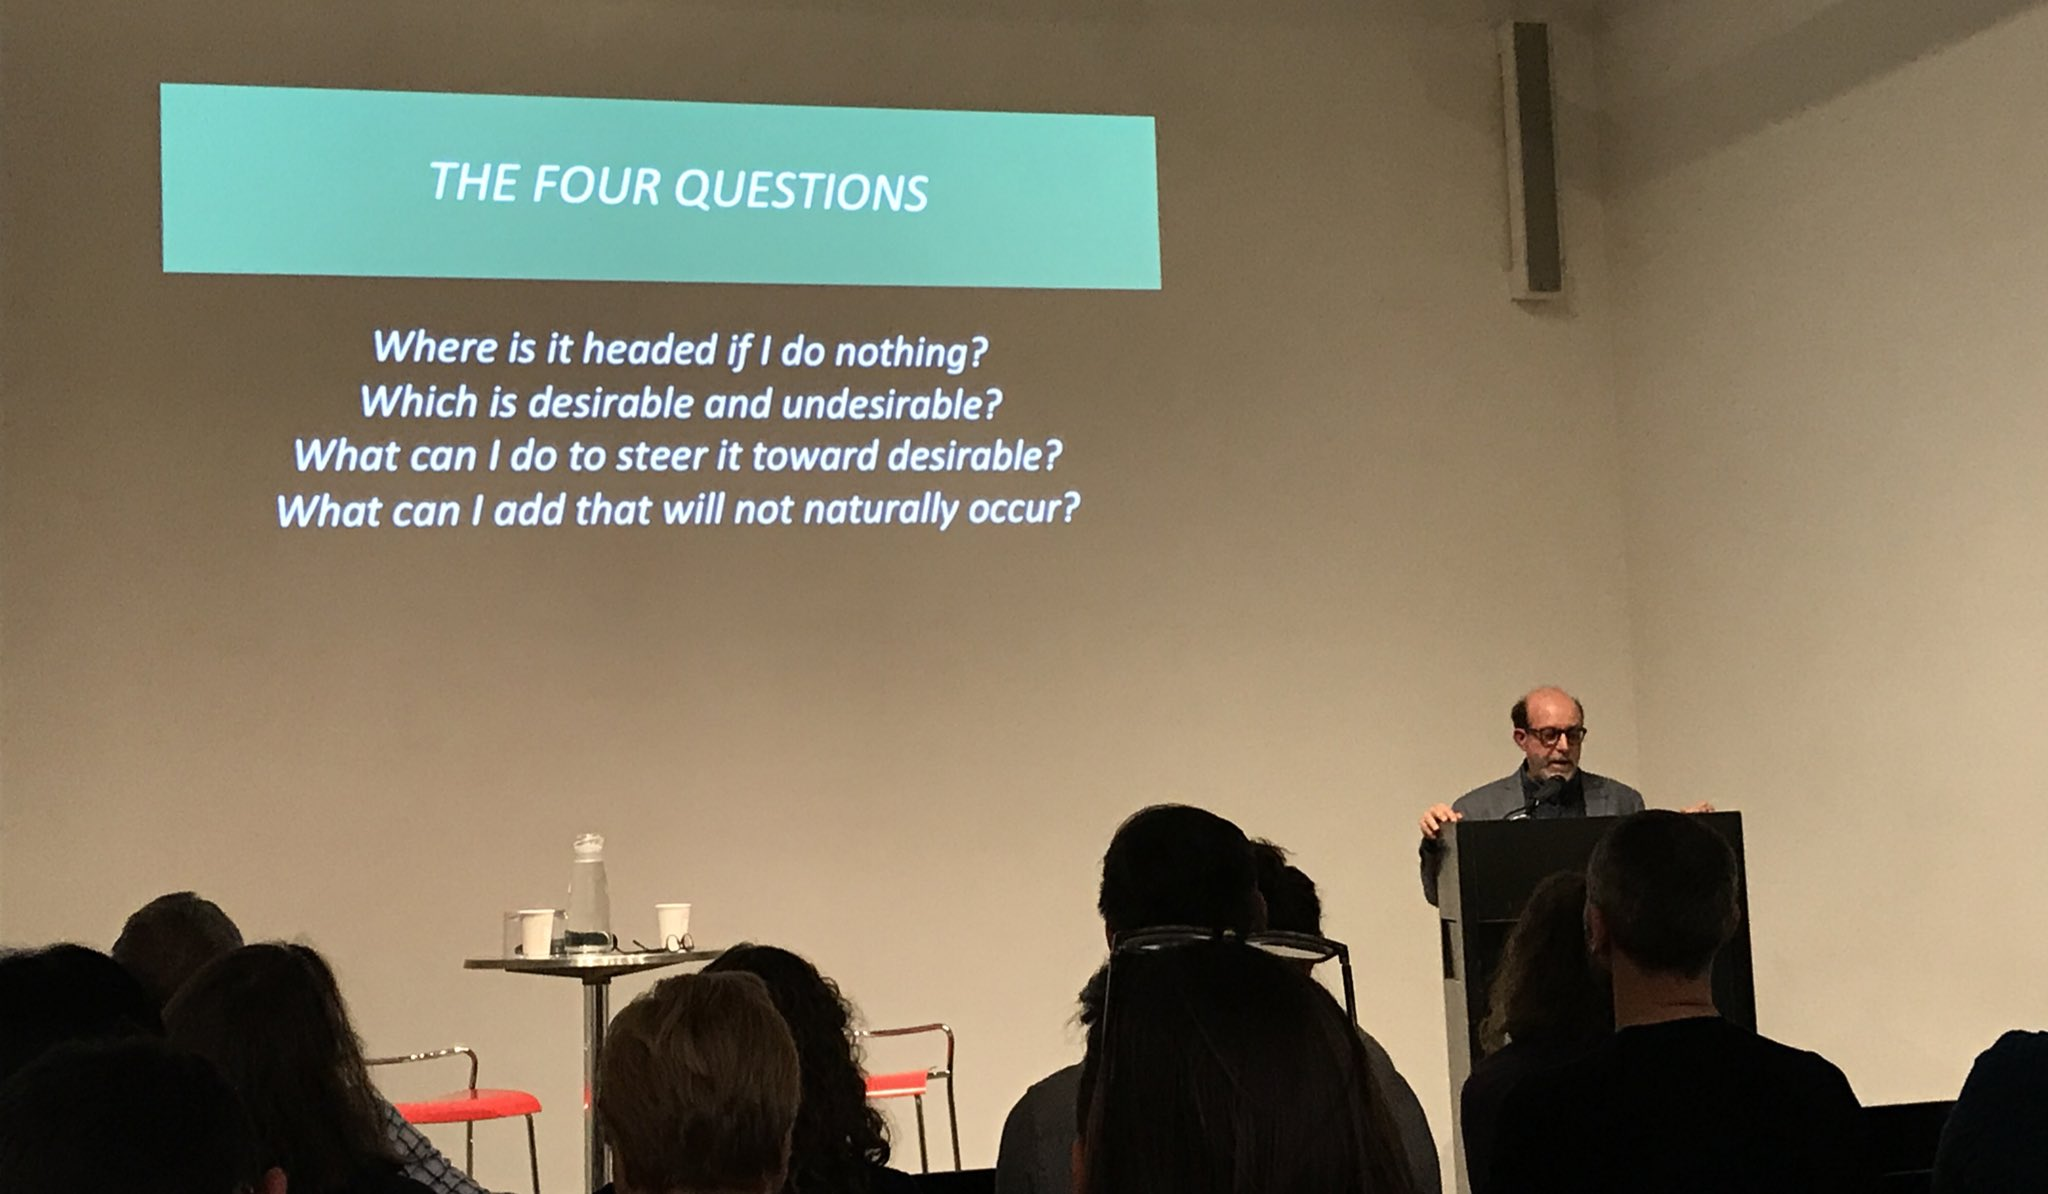 Four questions to ask yourself when designing with plants - understanding the ecological processes can help determine management strategies- Larry Weaner @ASLA_NY #4ceusandbeer @CenterForArch @TreesNewYork @rethinktrees @maglinfurniture #aslanyc #landarch https://t.co/Dpnh2c4391